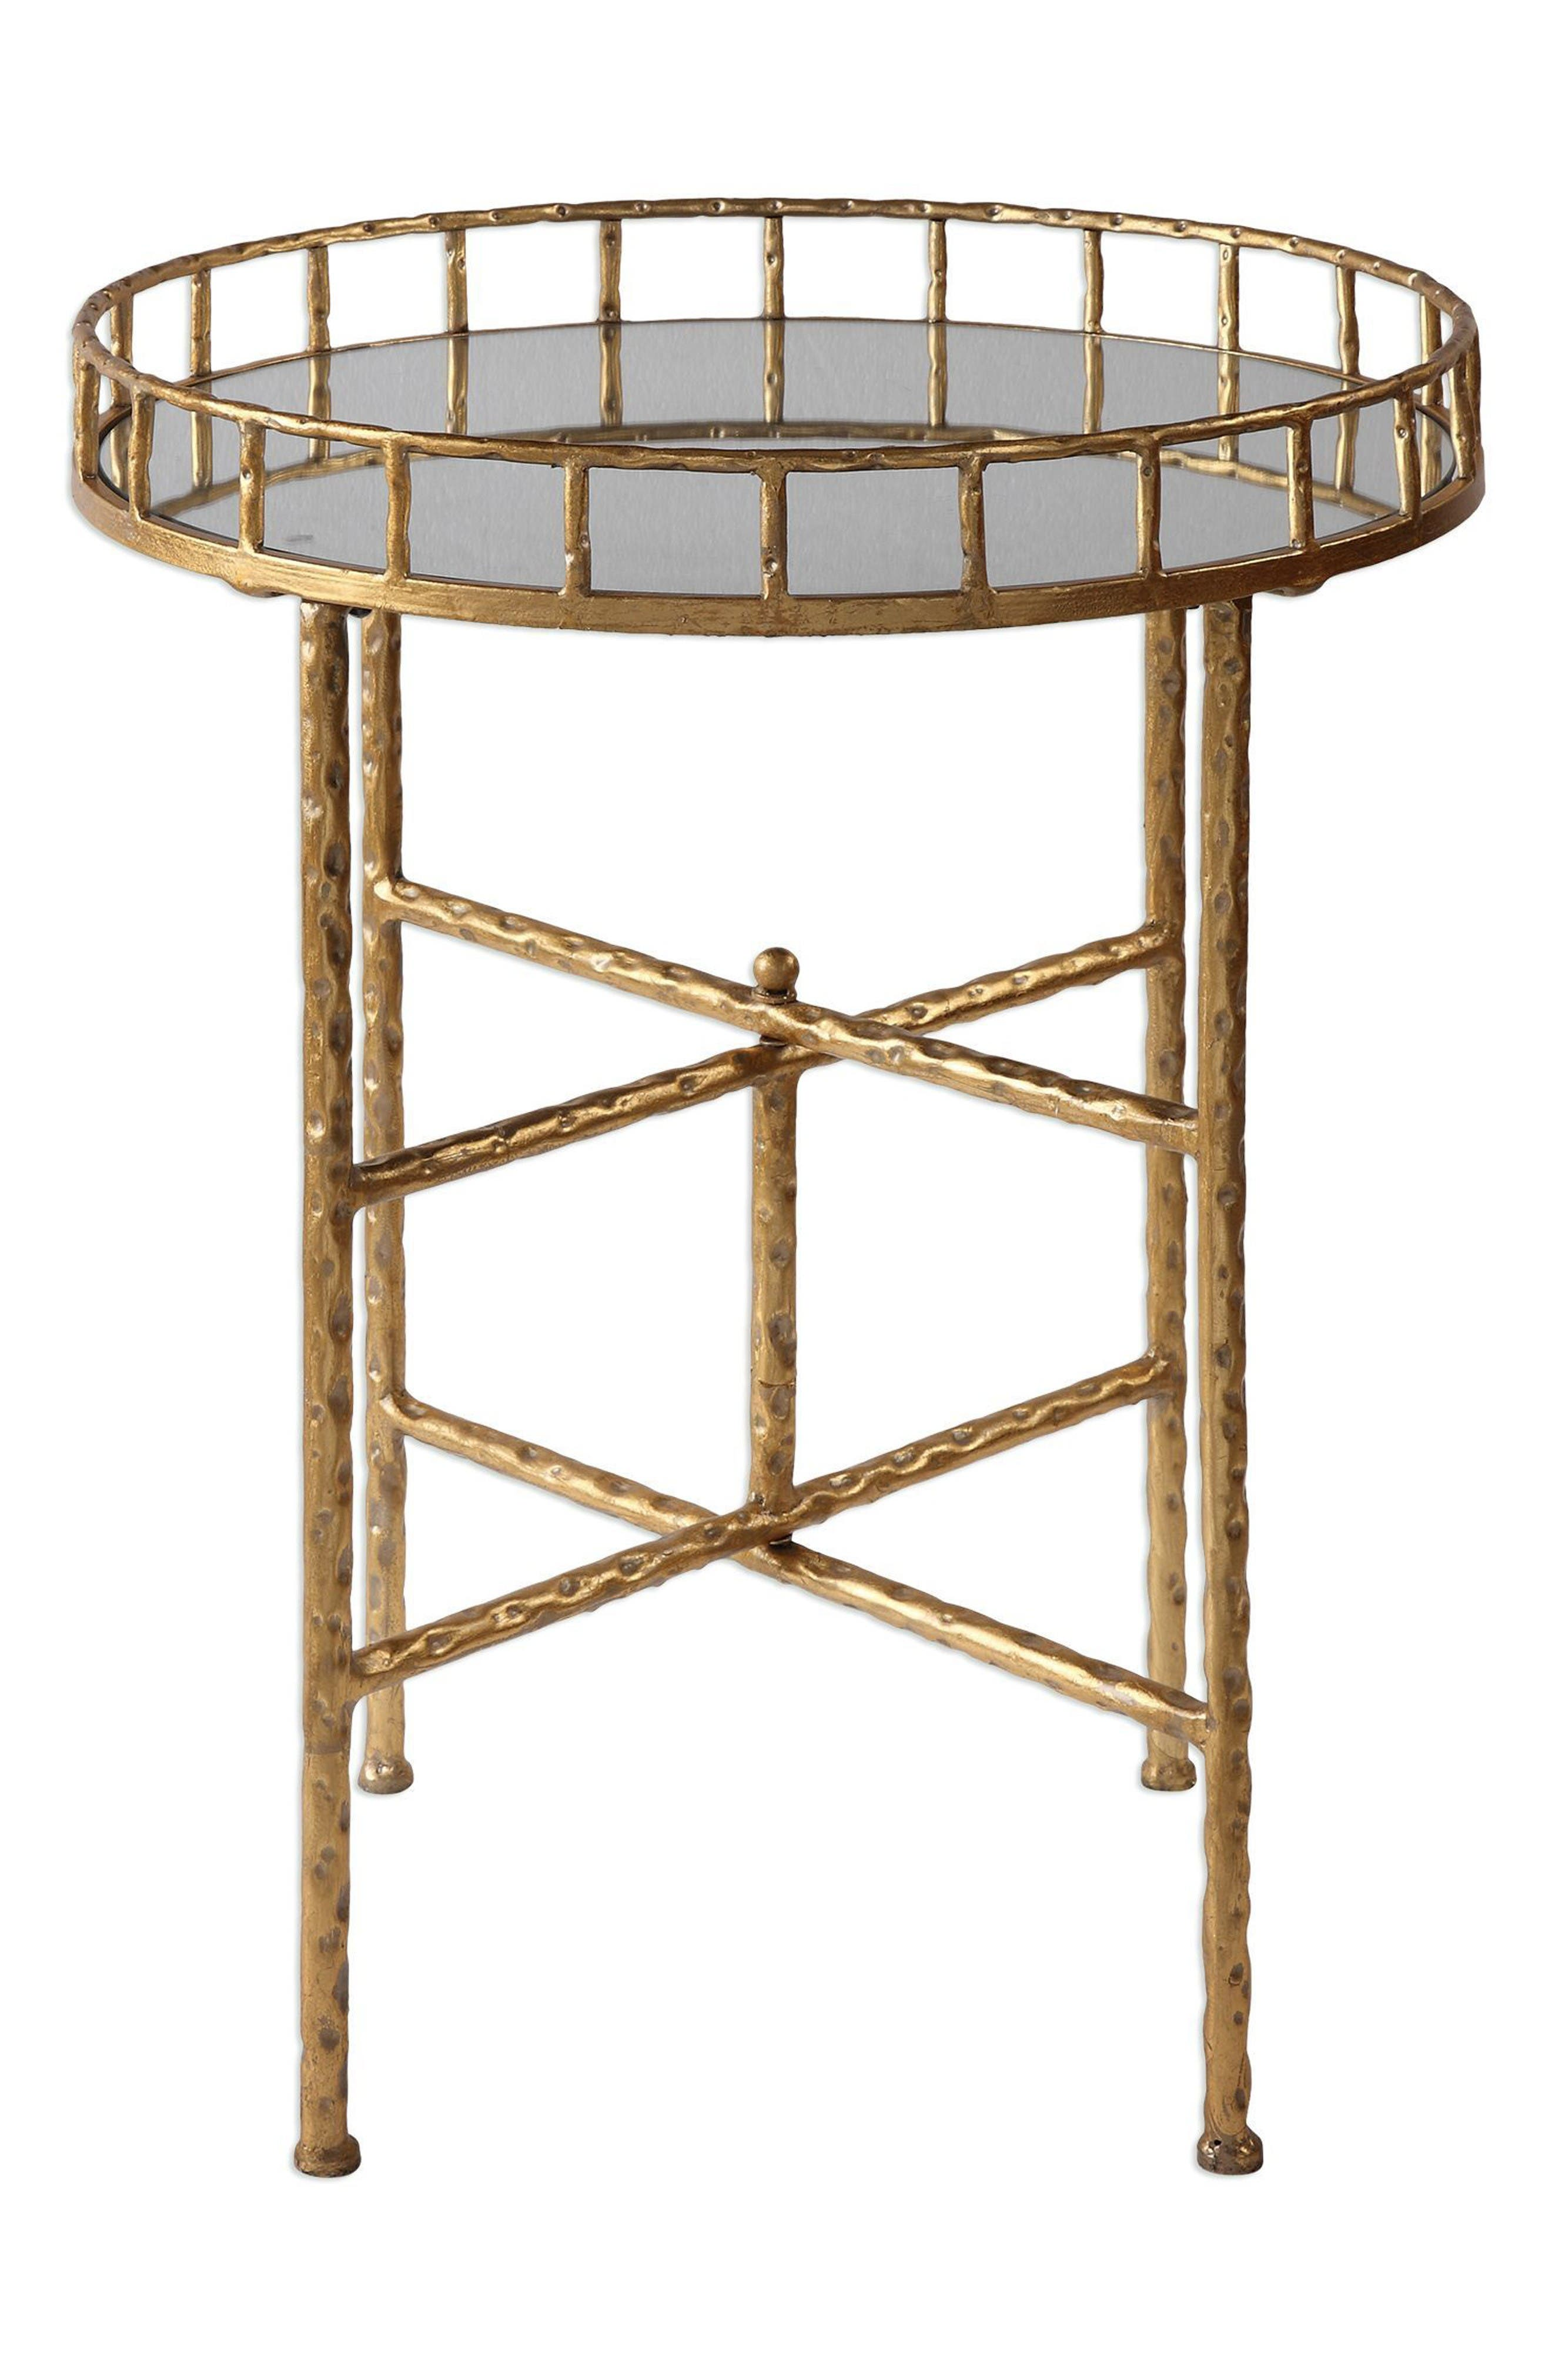 Alternate Image 1 Selected - Uttermost Tilly Accent Table